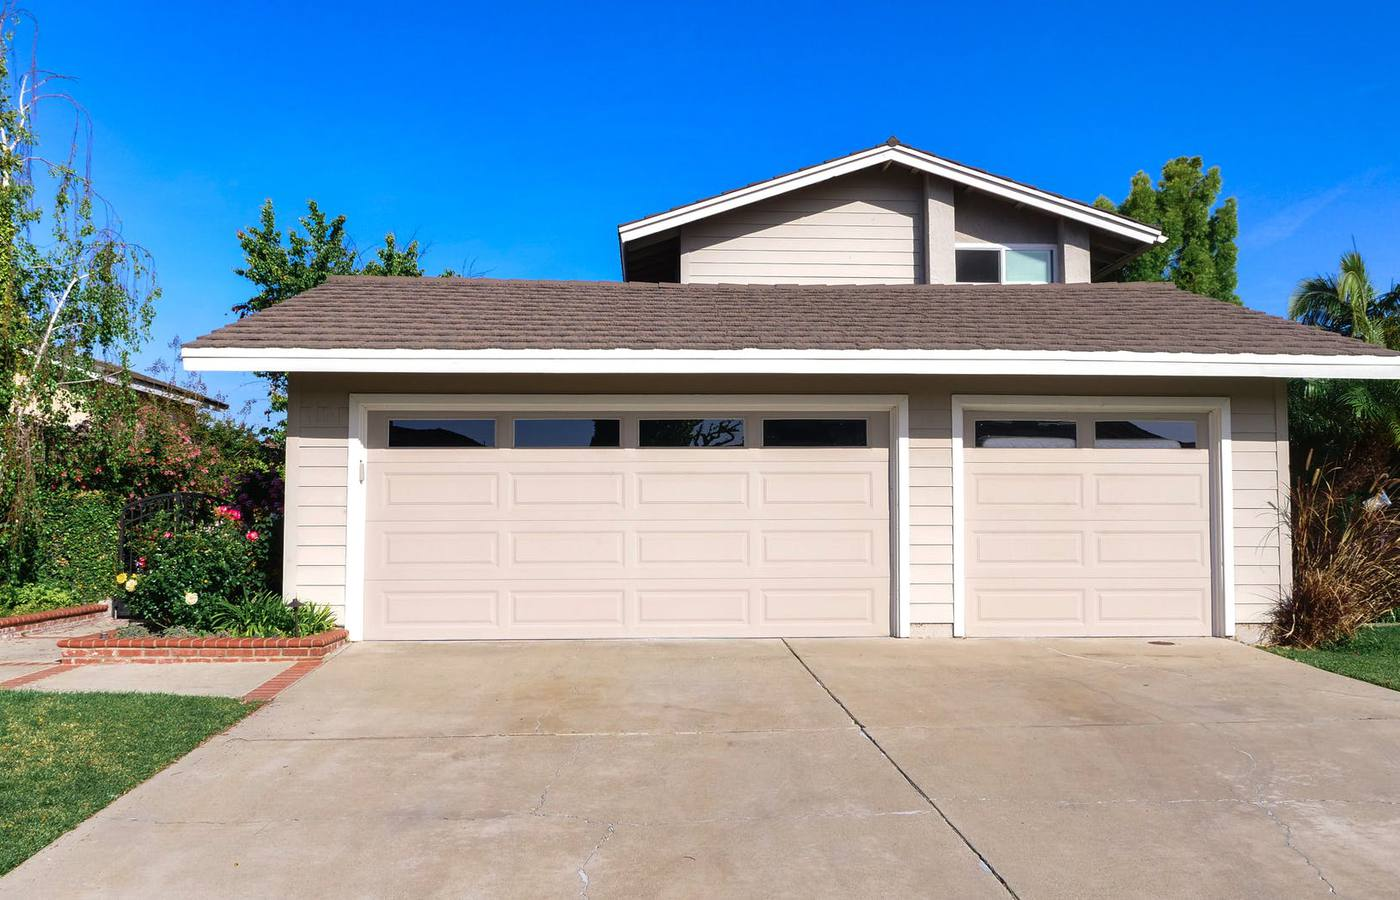 How Secure is a Garage Door? 3 Tips to Secure your Garage